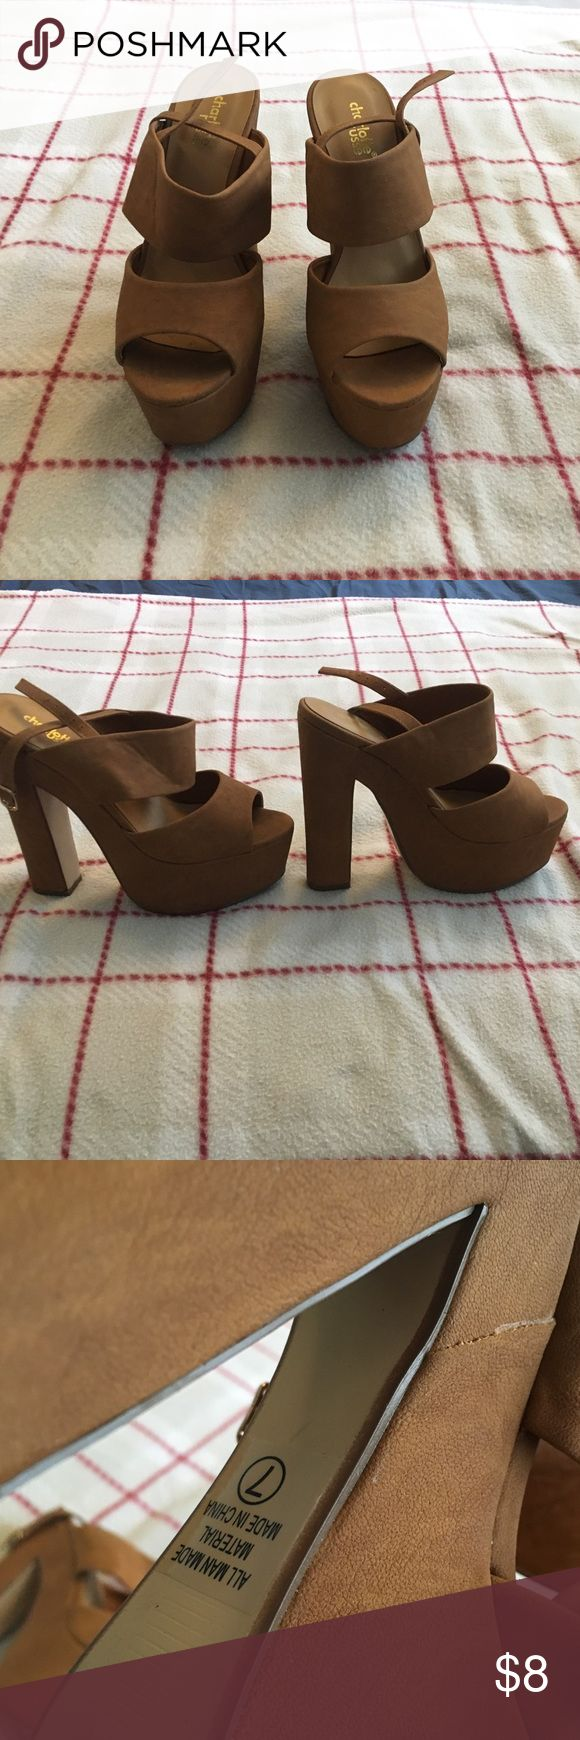 Tan high heels 6in double strap tan heels. Thicker heel plus platform and ankle strap, so they're pretty easy to walk in. Cute date night or brunch heels Charlotte Russe Shoes Heels